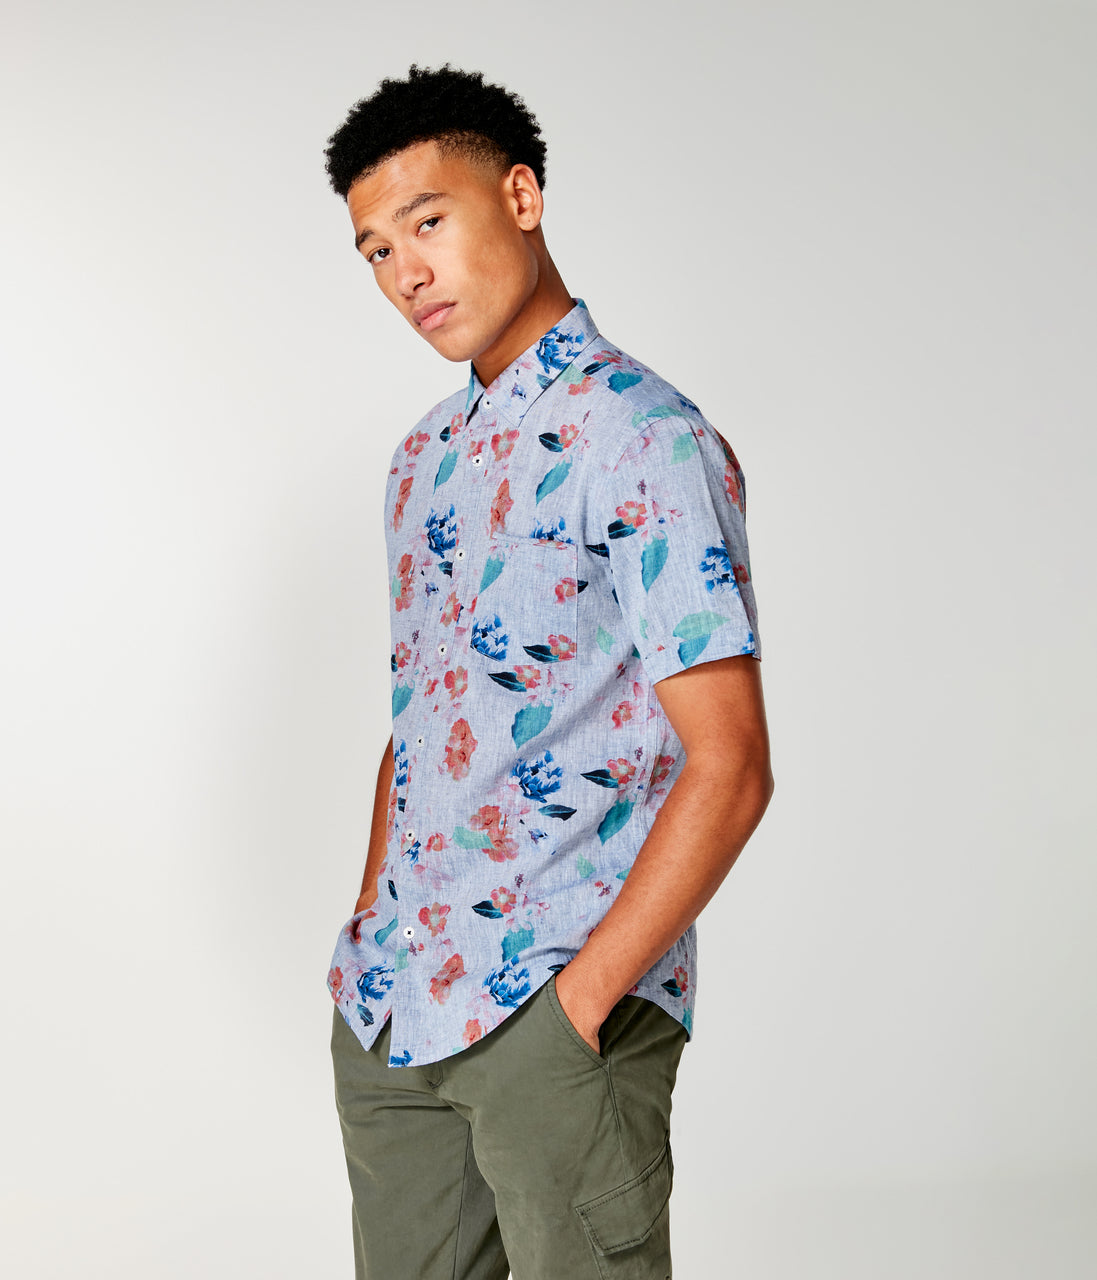 Linen On-Point Shirt - Indigo Amalfi Floral - Good Man Brand - Linen On-Point Print Shirt Short Sleeve - Indigo Amalfi Floral